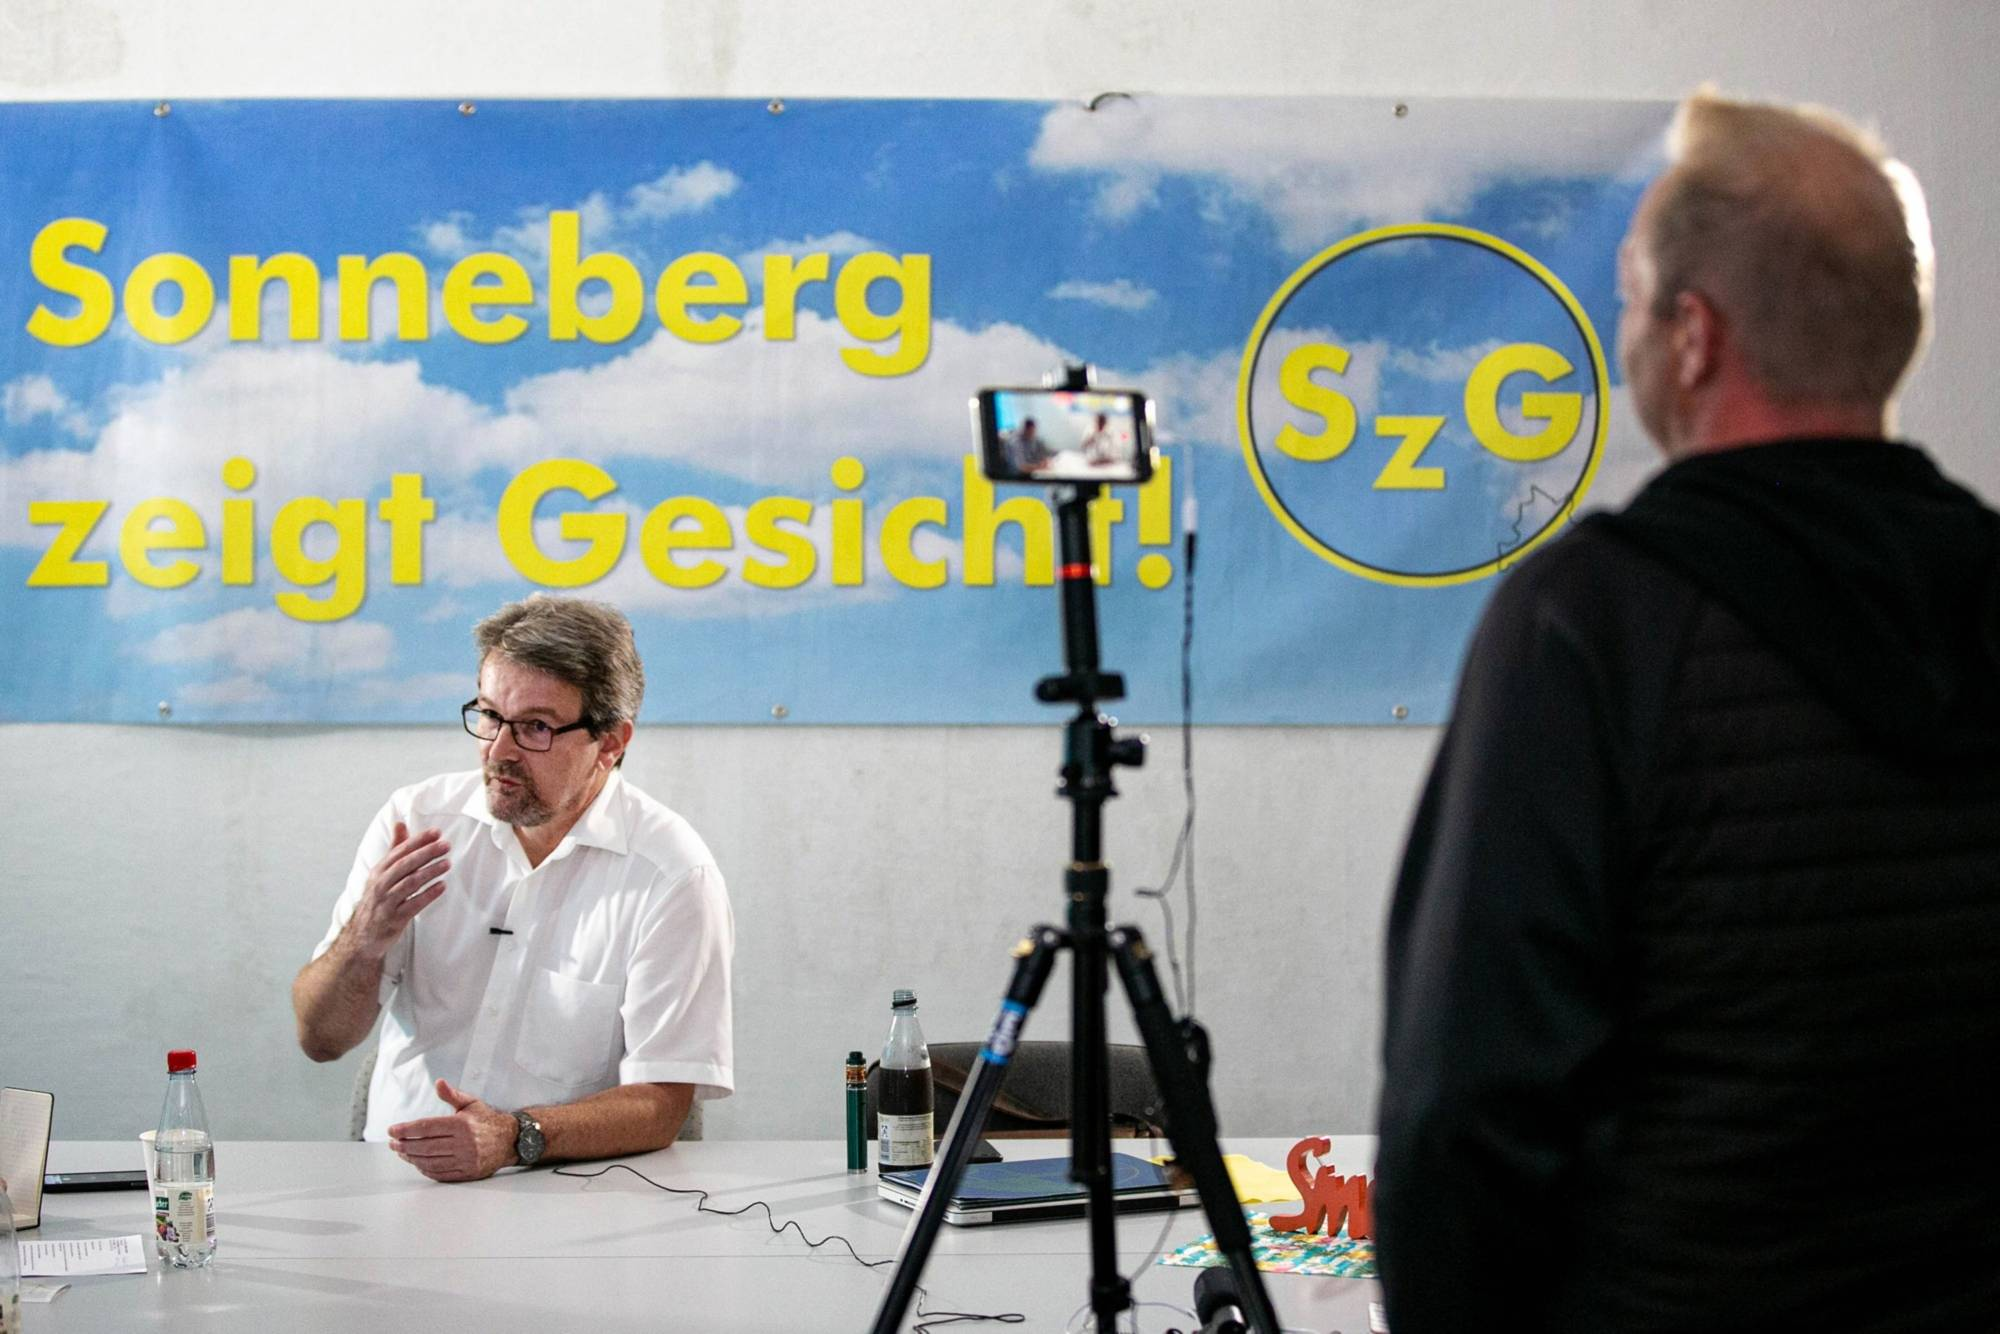 Ingo Schreurs, a translator and organizer of Sonneberg Shows Its True Face, during a livestream on Facebook on Aug. 30 | BLOOMBERG